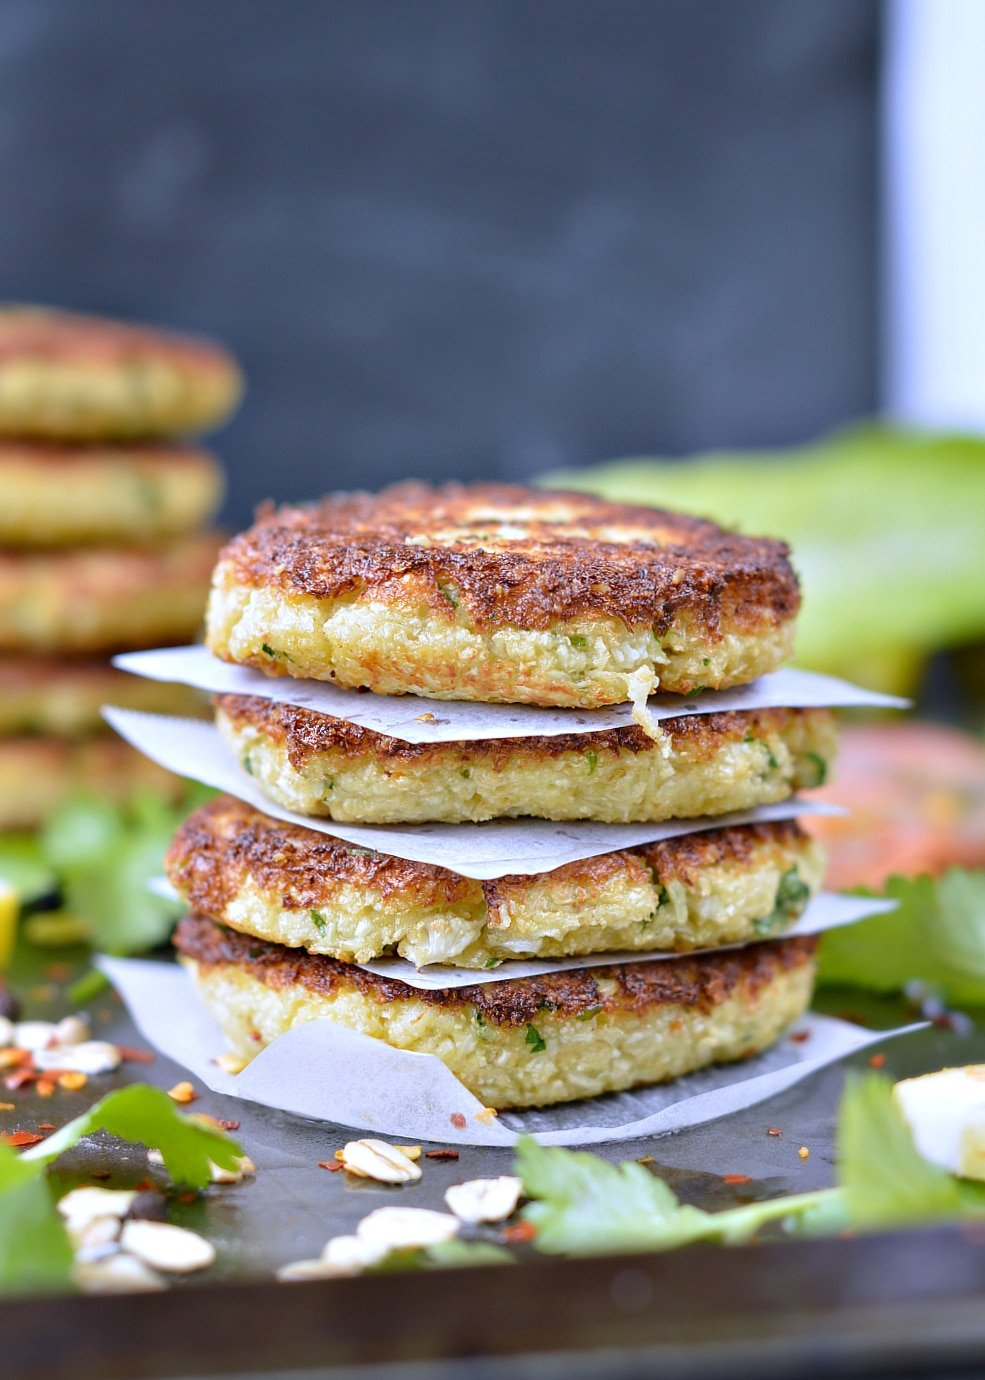 Healthy Paleo Cauliflower fritters, low carb and gluten free. An easy and tasty 4 ingredients crispy fritter recipe perfect as a clean eating meal on its own or to fill burger buns.